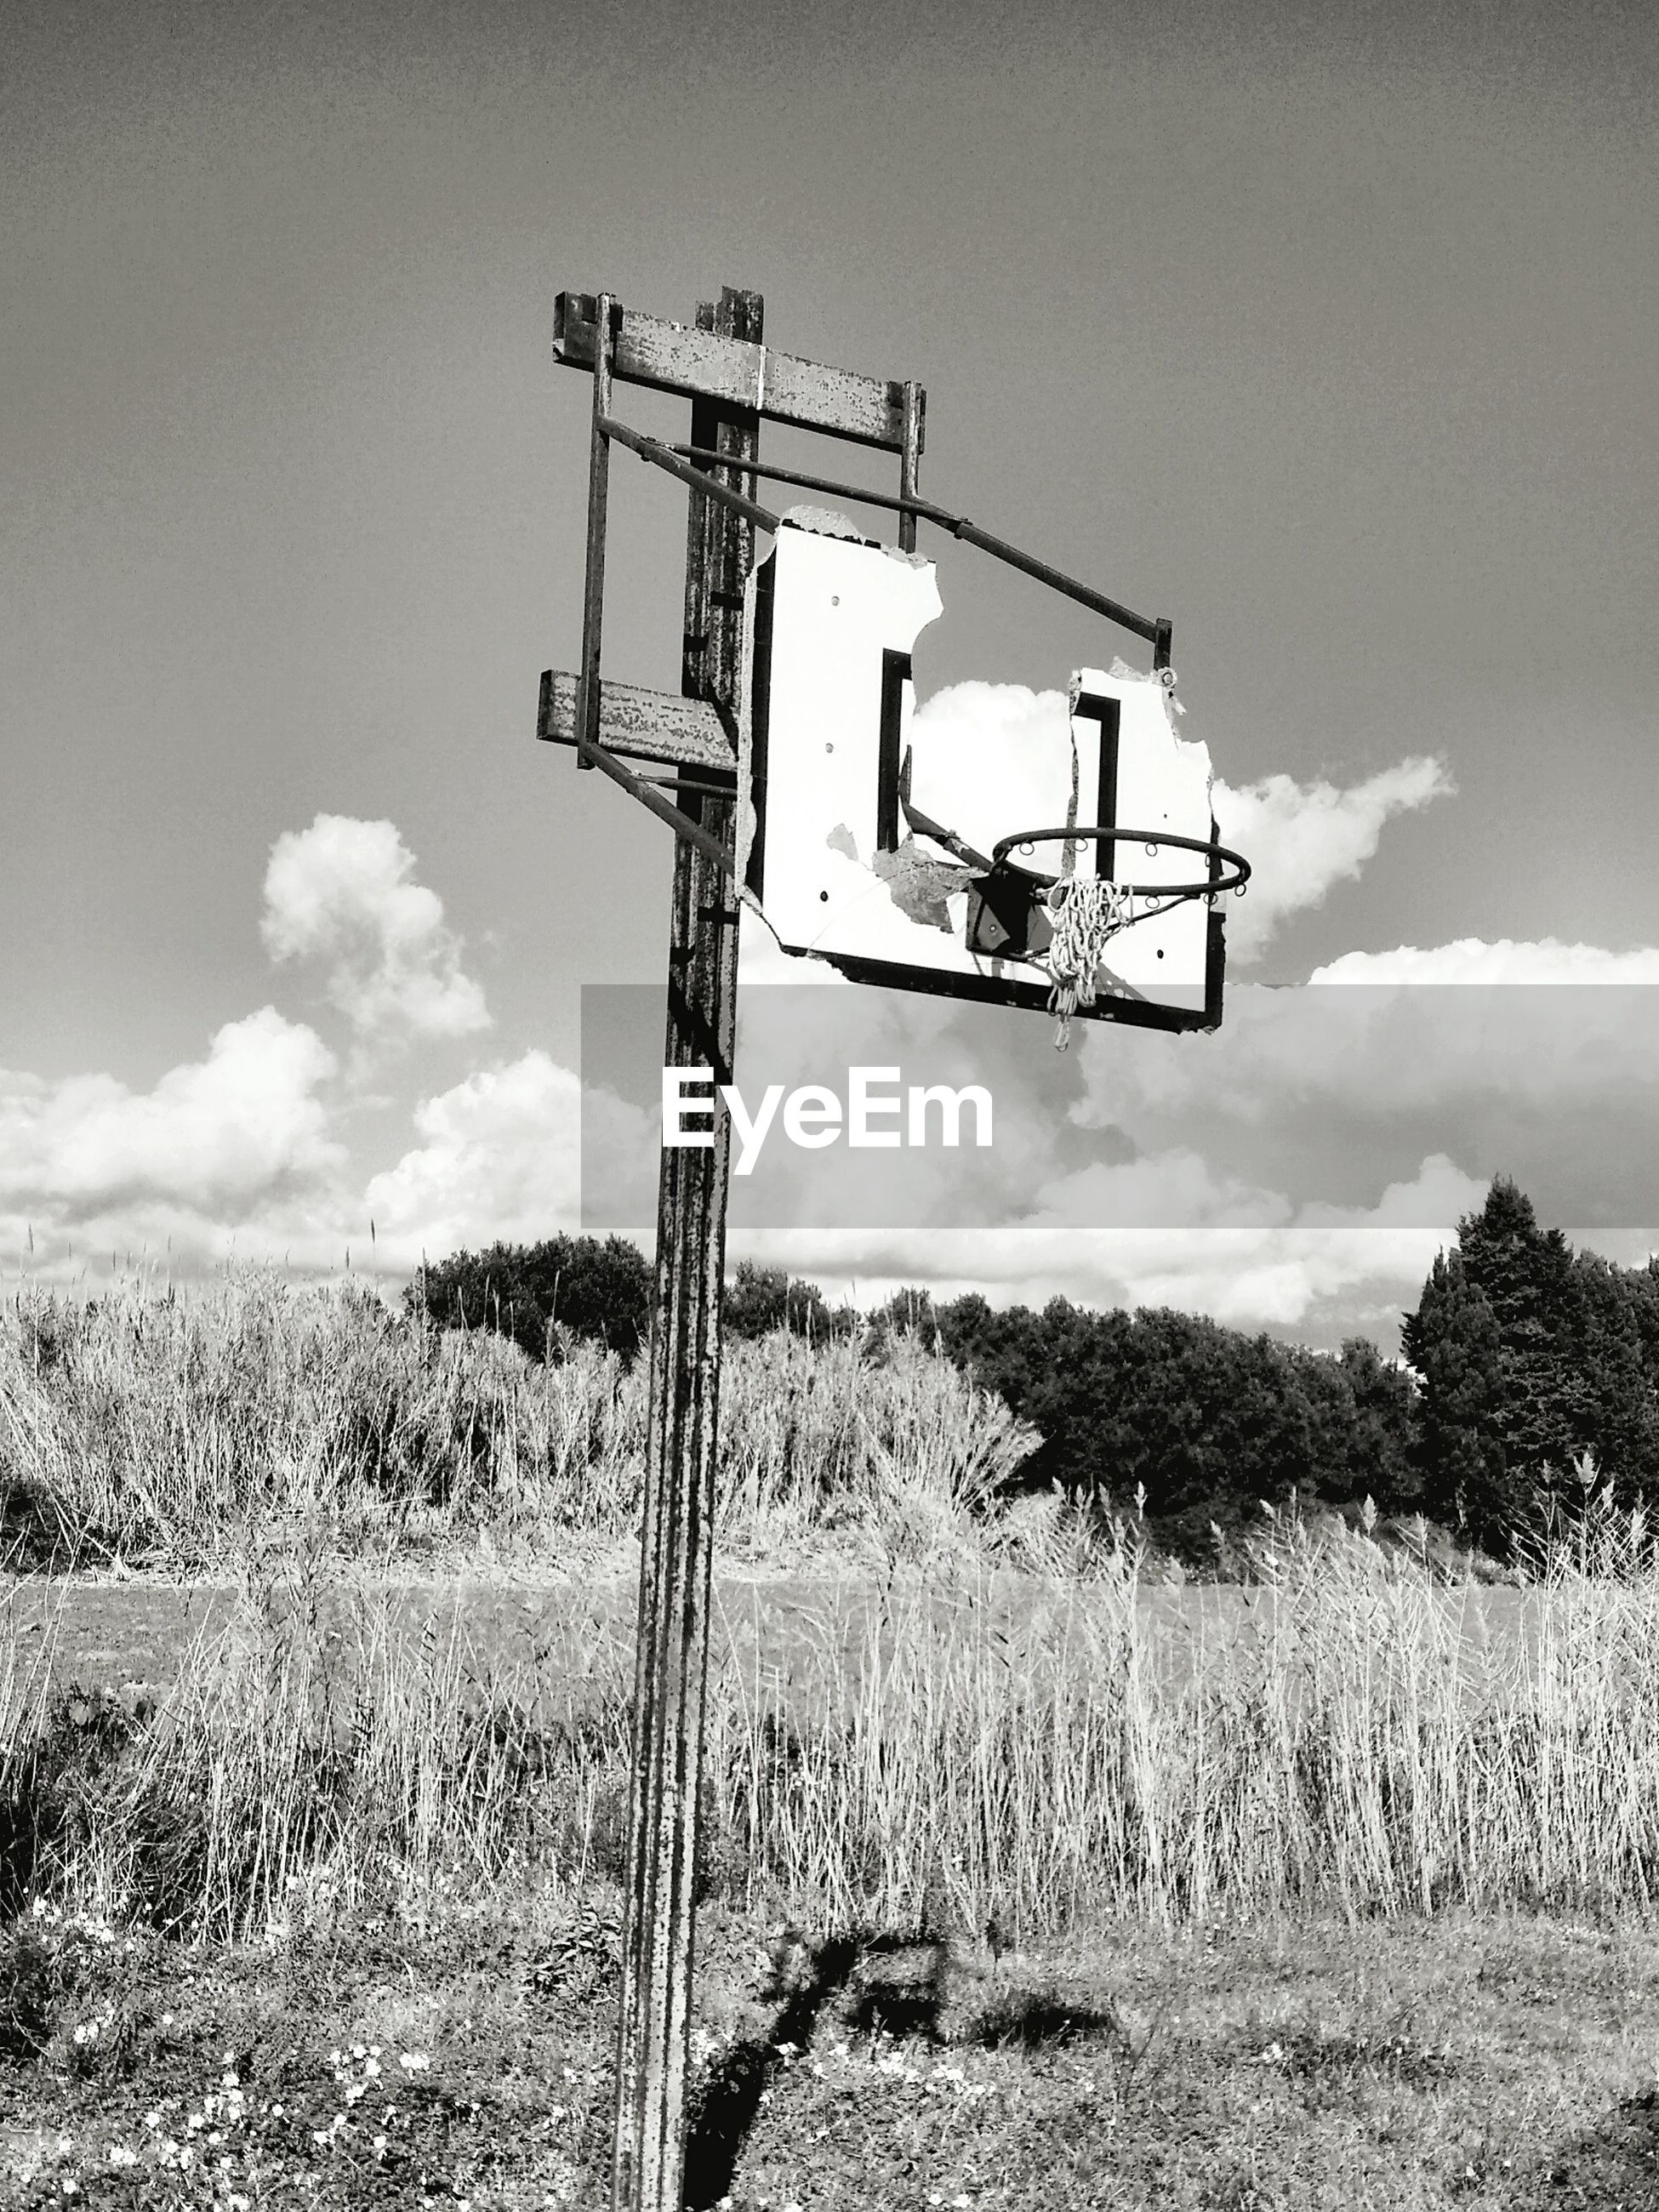 Low angle view of old basketball hoop on field against sky